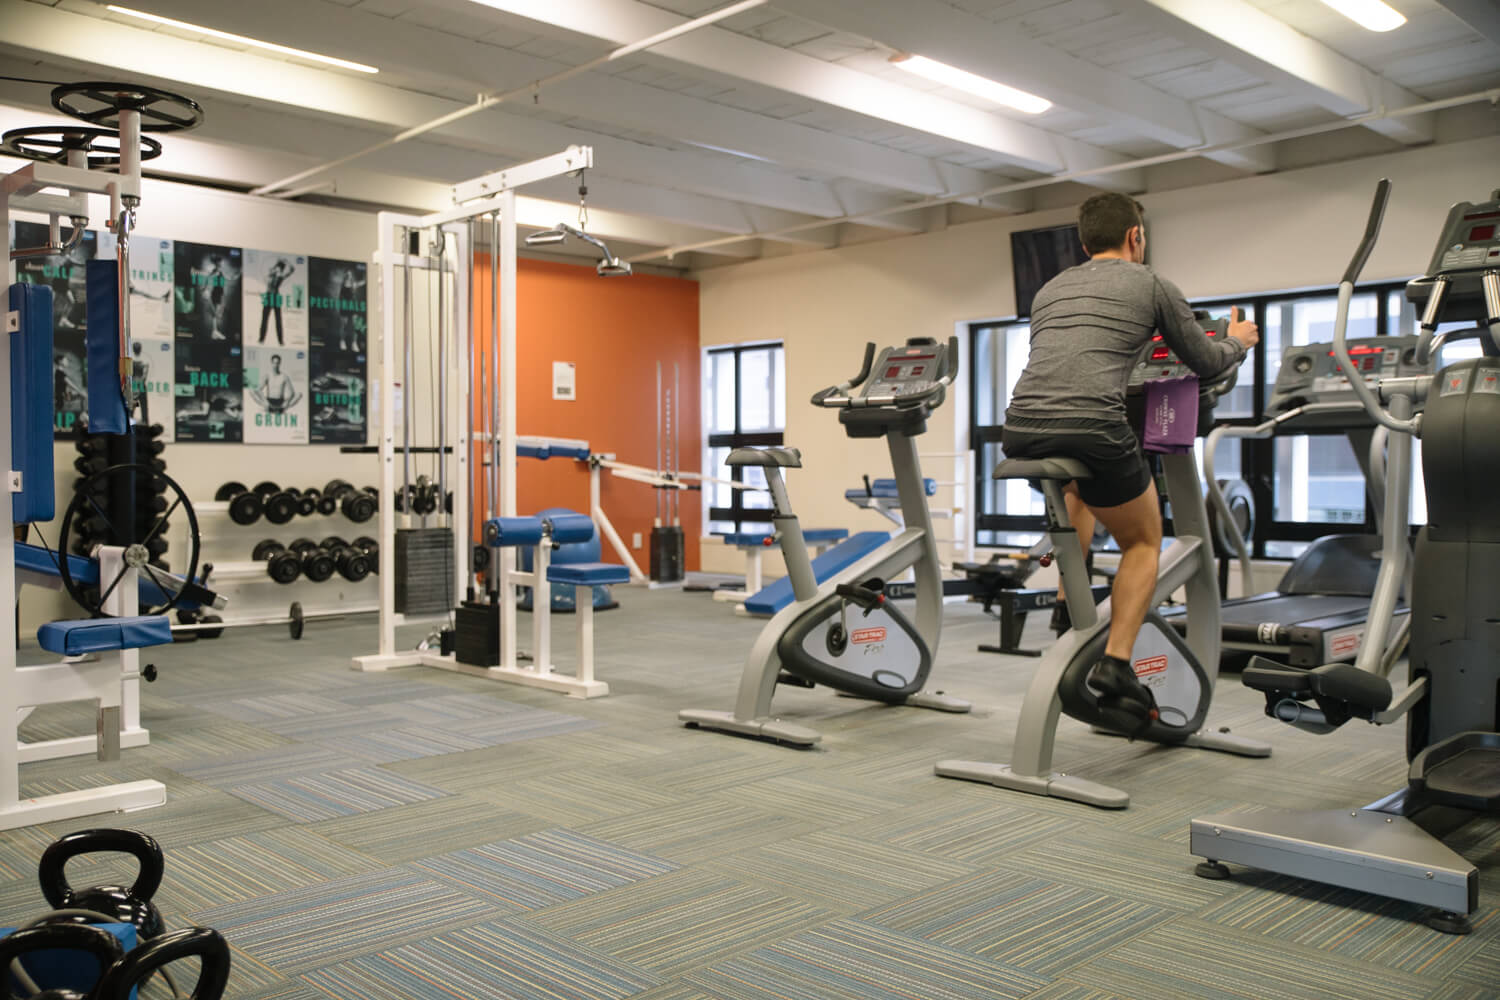 13. Fitness Centre